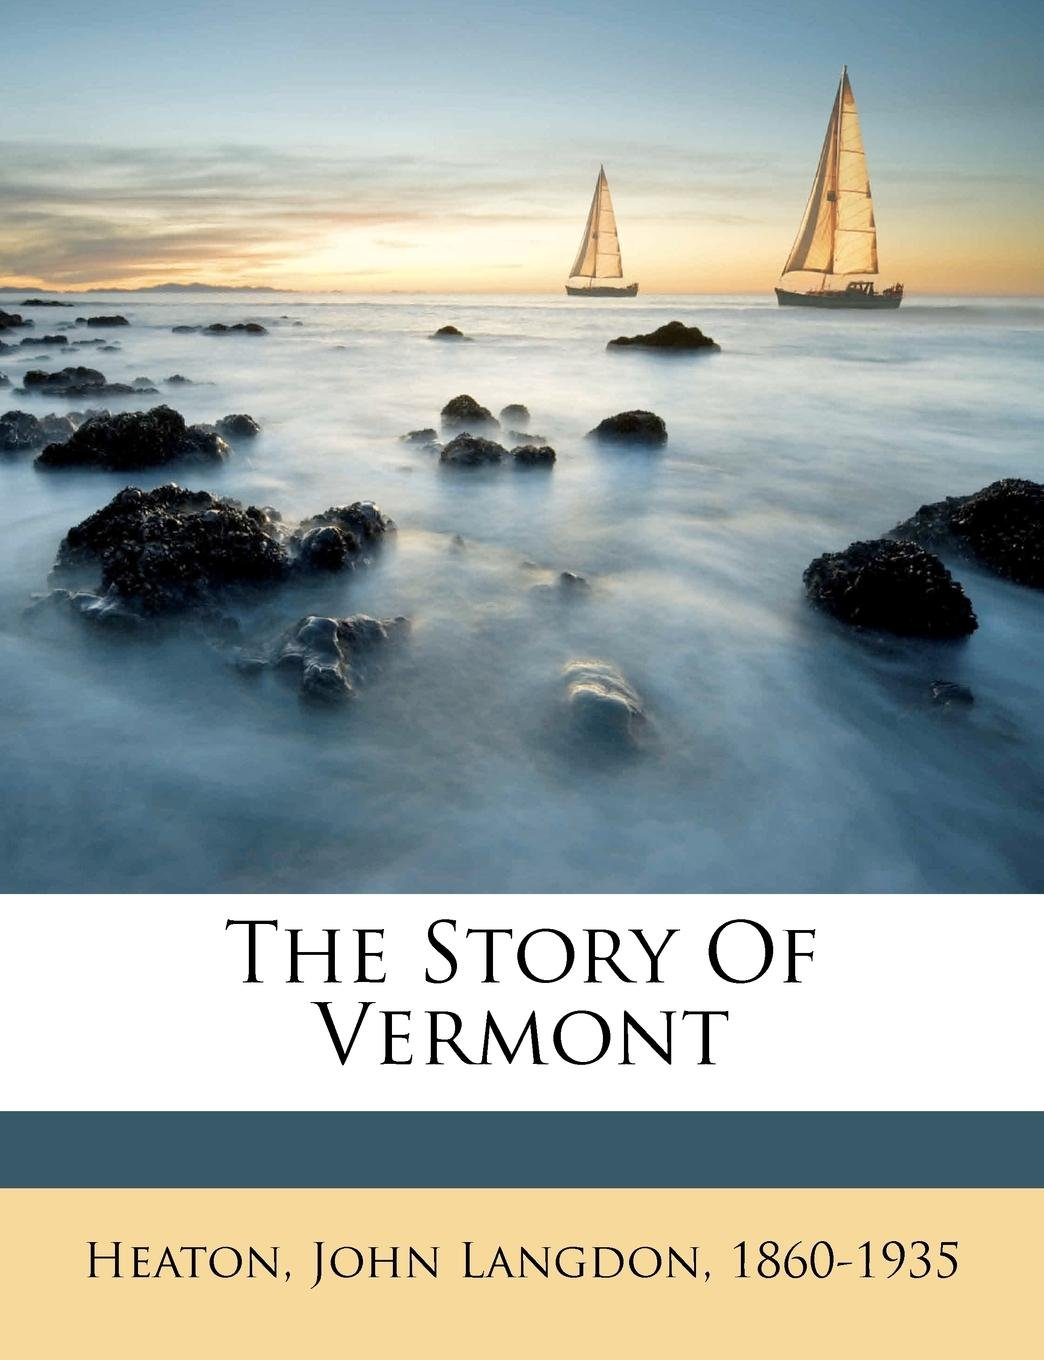 The Story Of Vermont John Langdon 1860-1935 Heaton